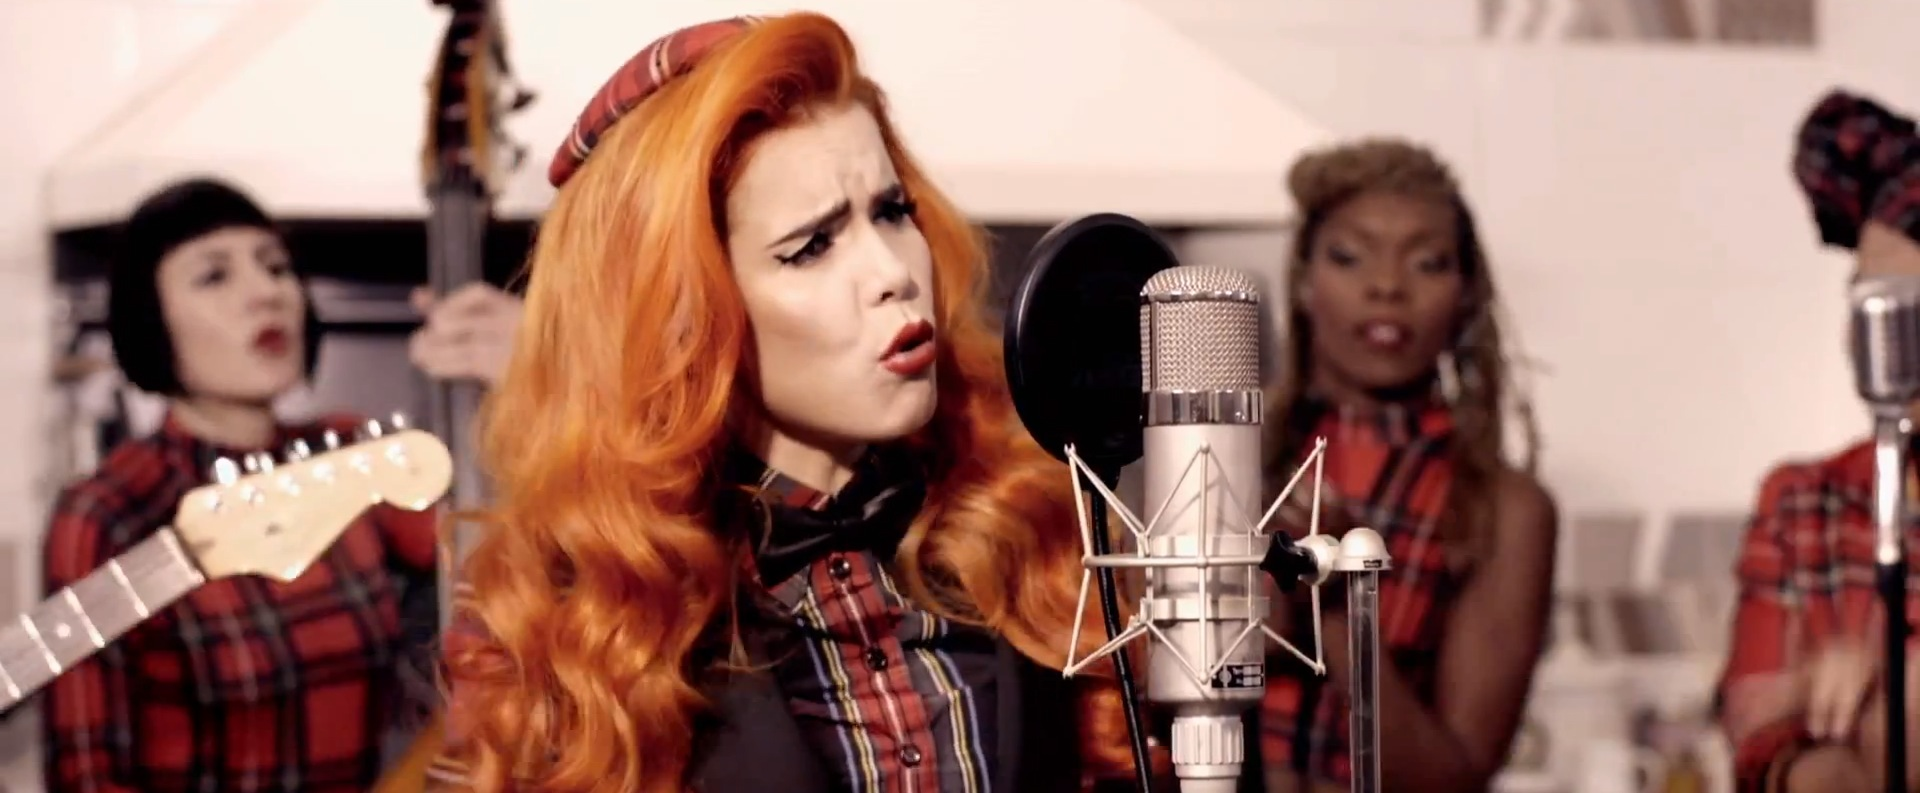 paloma singles List of the best paloma faith albums, including pictures of the album covers when available this paloma faith discography is ranked from best to worst, so the top.